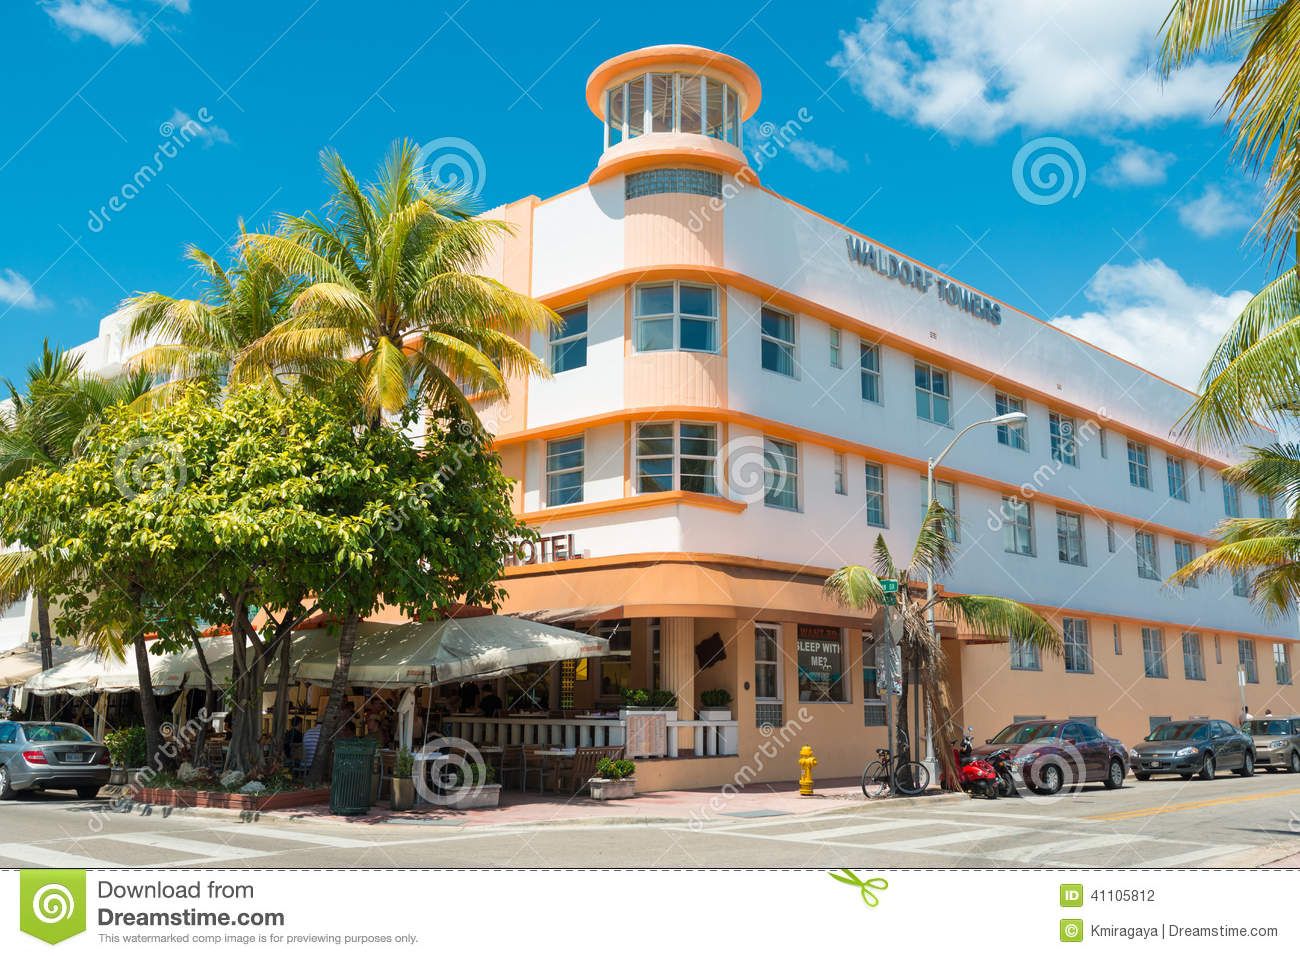 Art deco architecture at ocean drive in south beach miami for Architect florida